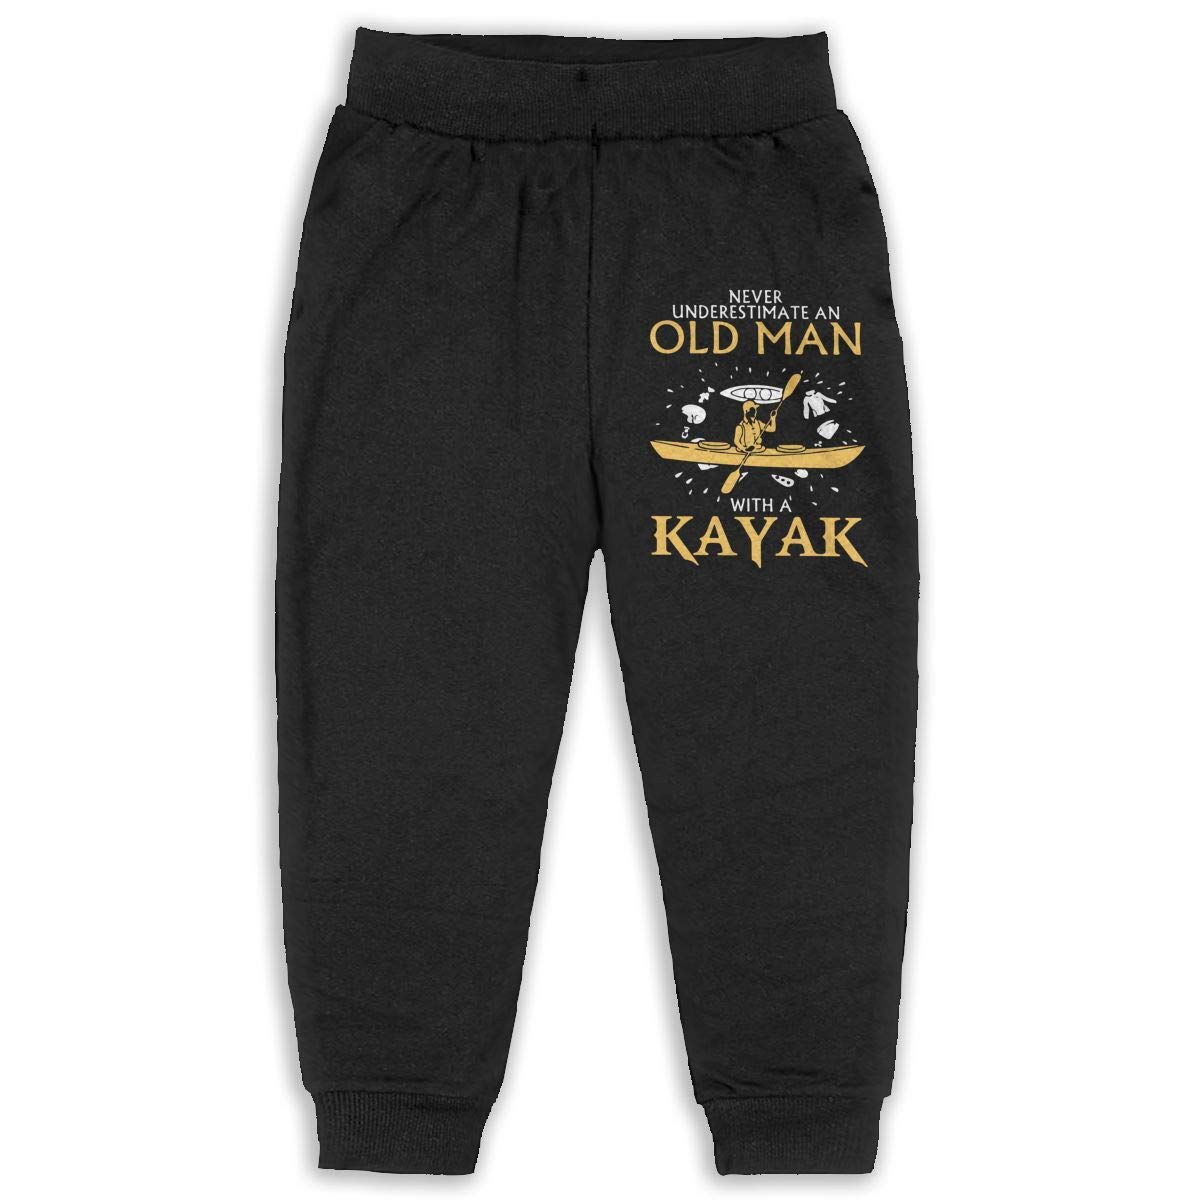 Never Underestimate an Old Man with A Kayak Kids /& Toddler Pants Soft Cozy Girls Boys Elastic Trousers